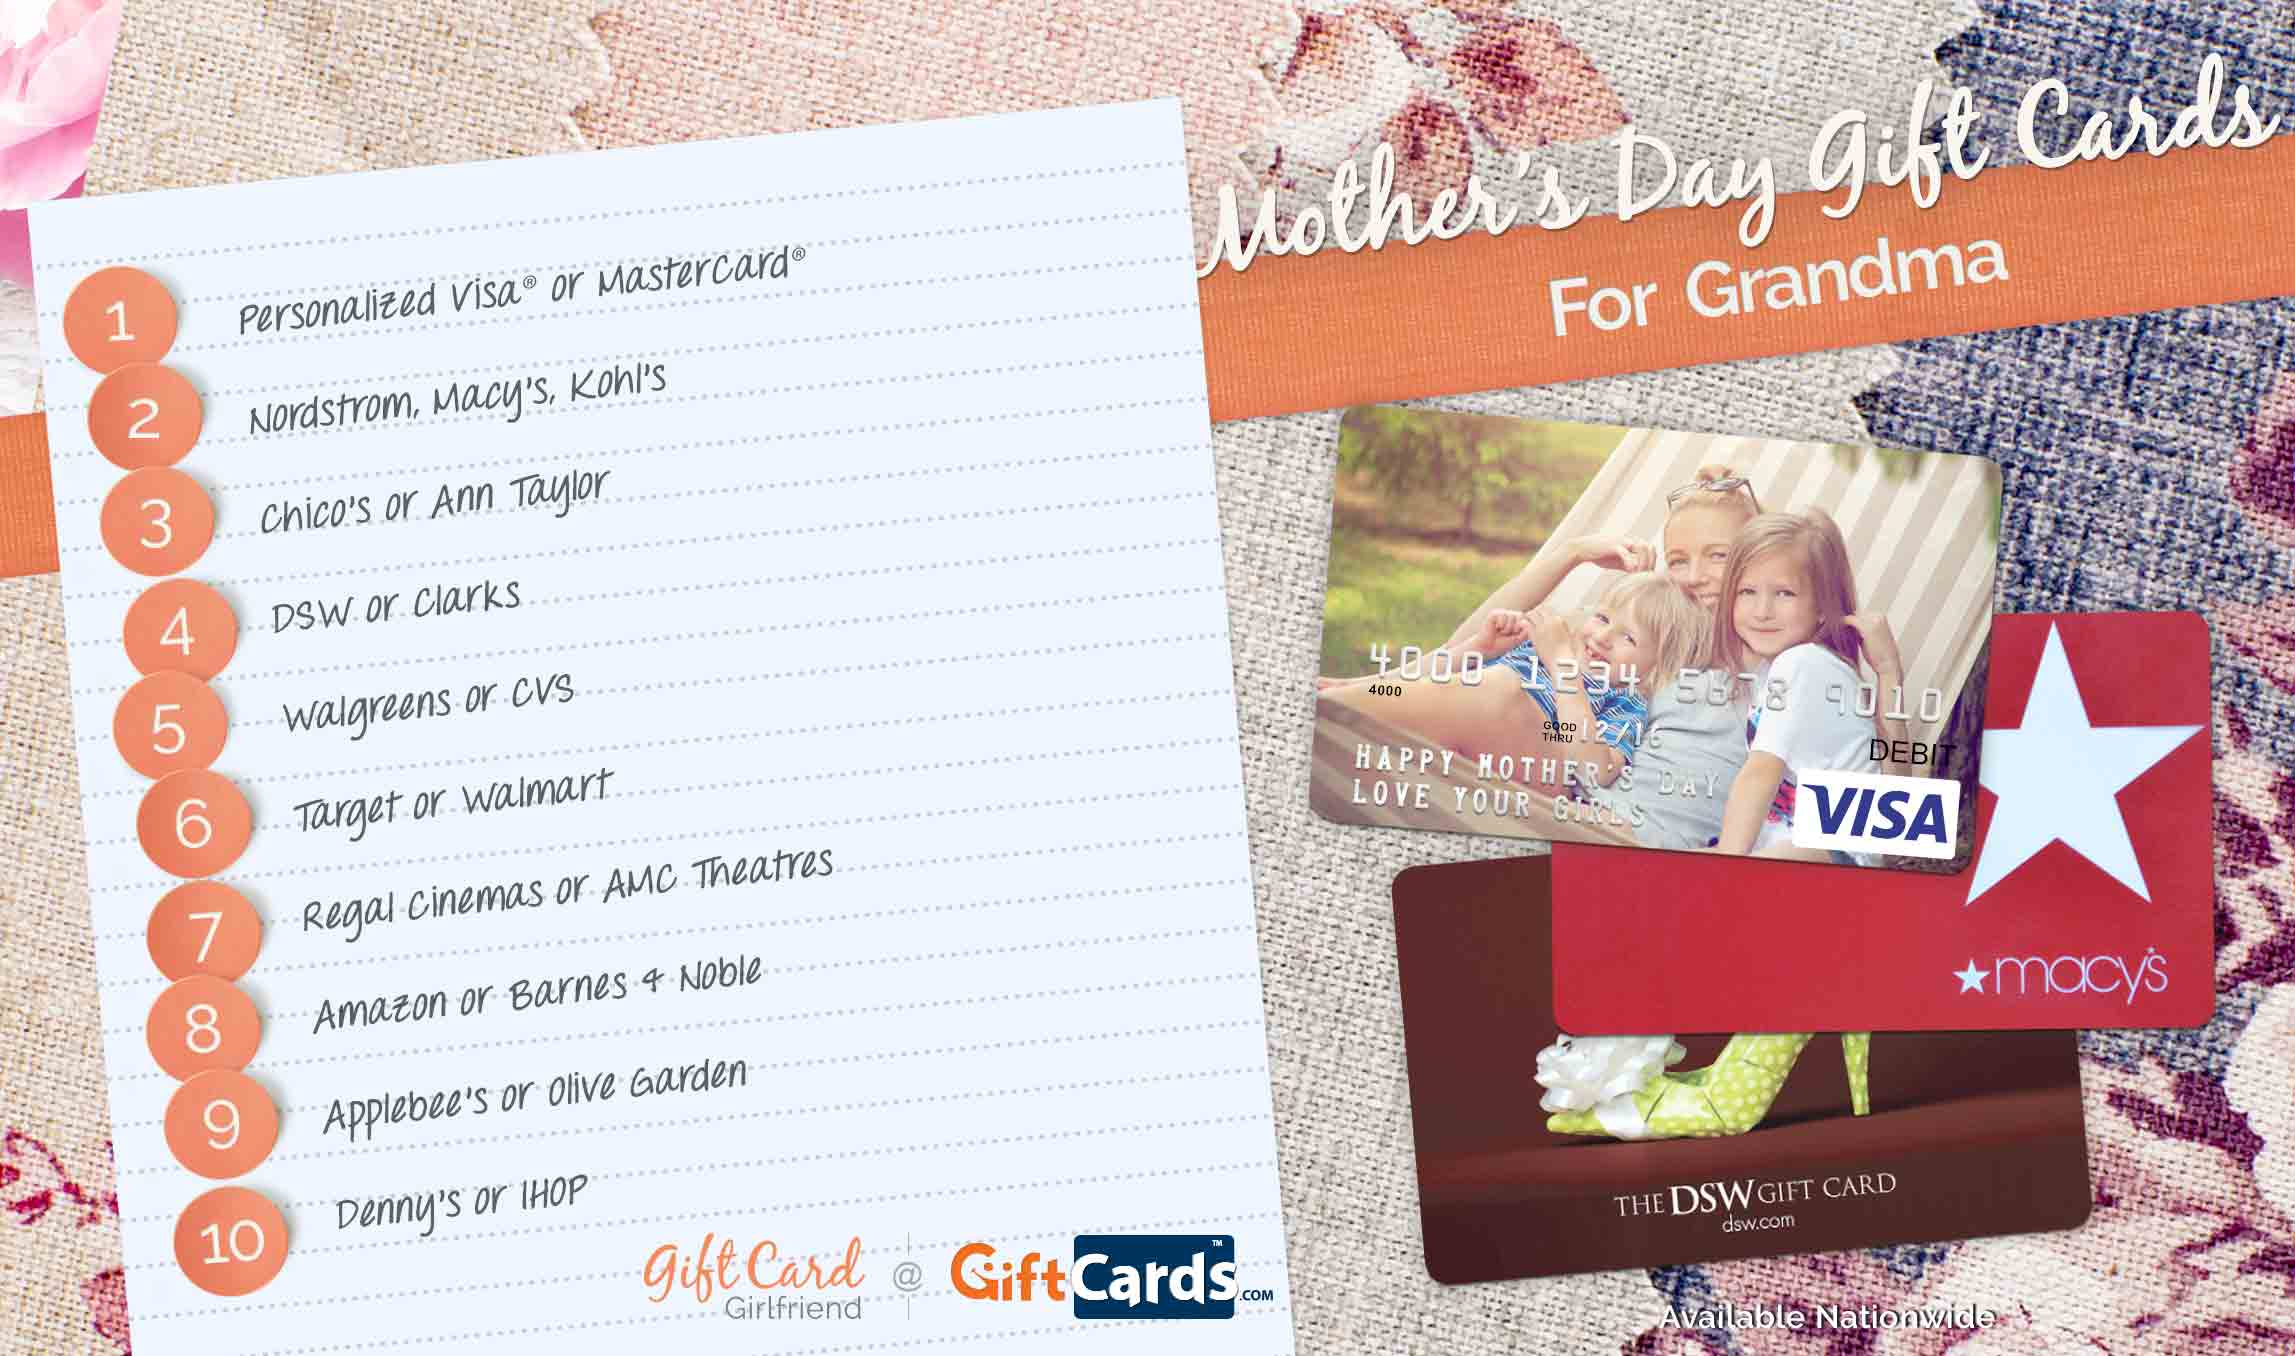 Top 10 Mother's Day Gift Cards for Grandma | GCG